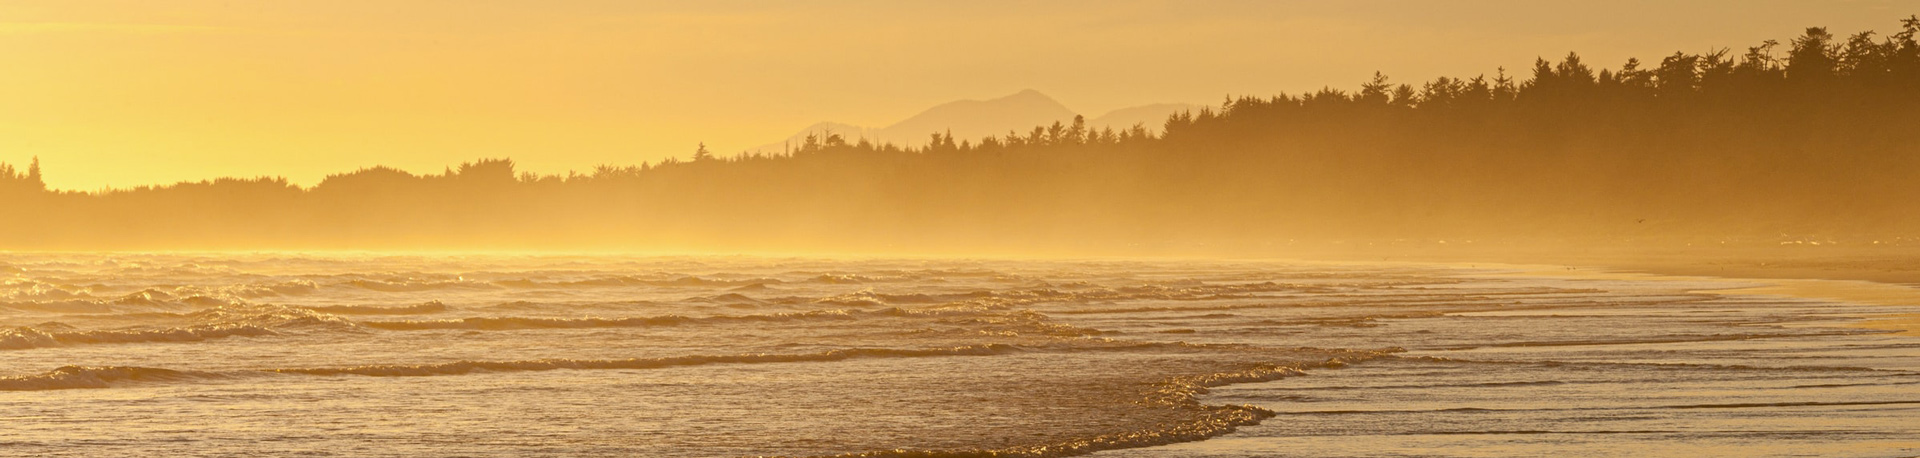 outgoing tide on a sandy stretch of beach bathed in golden sunlight with the shadow of forests in the background